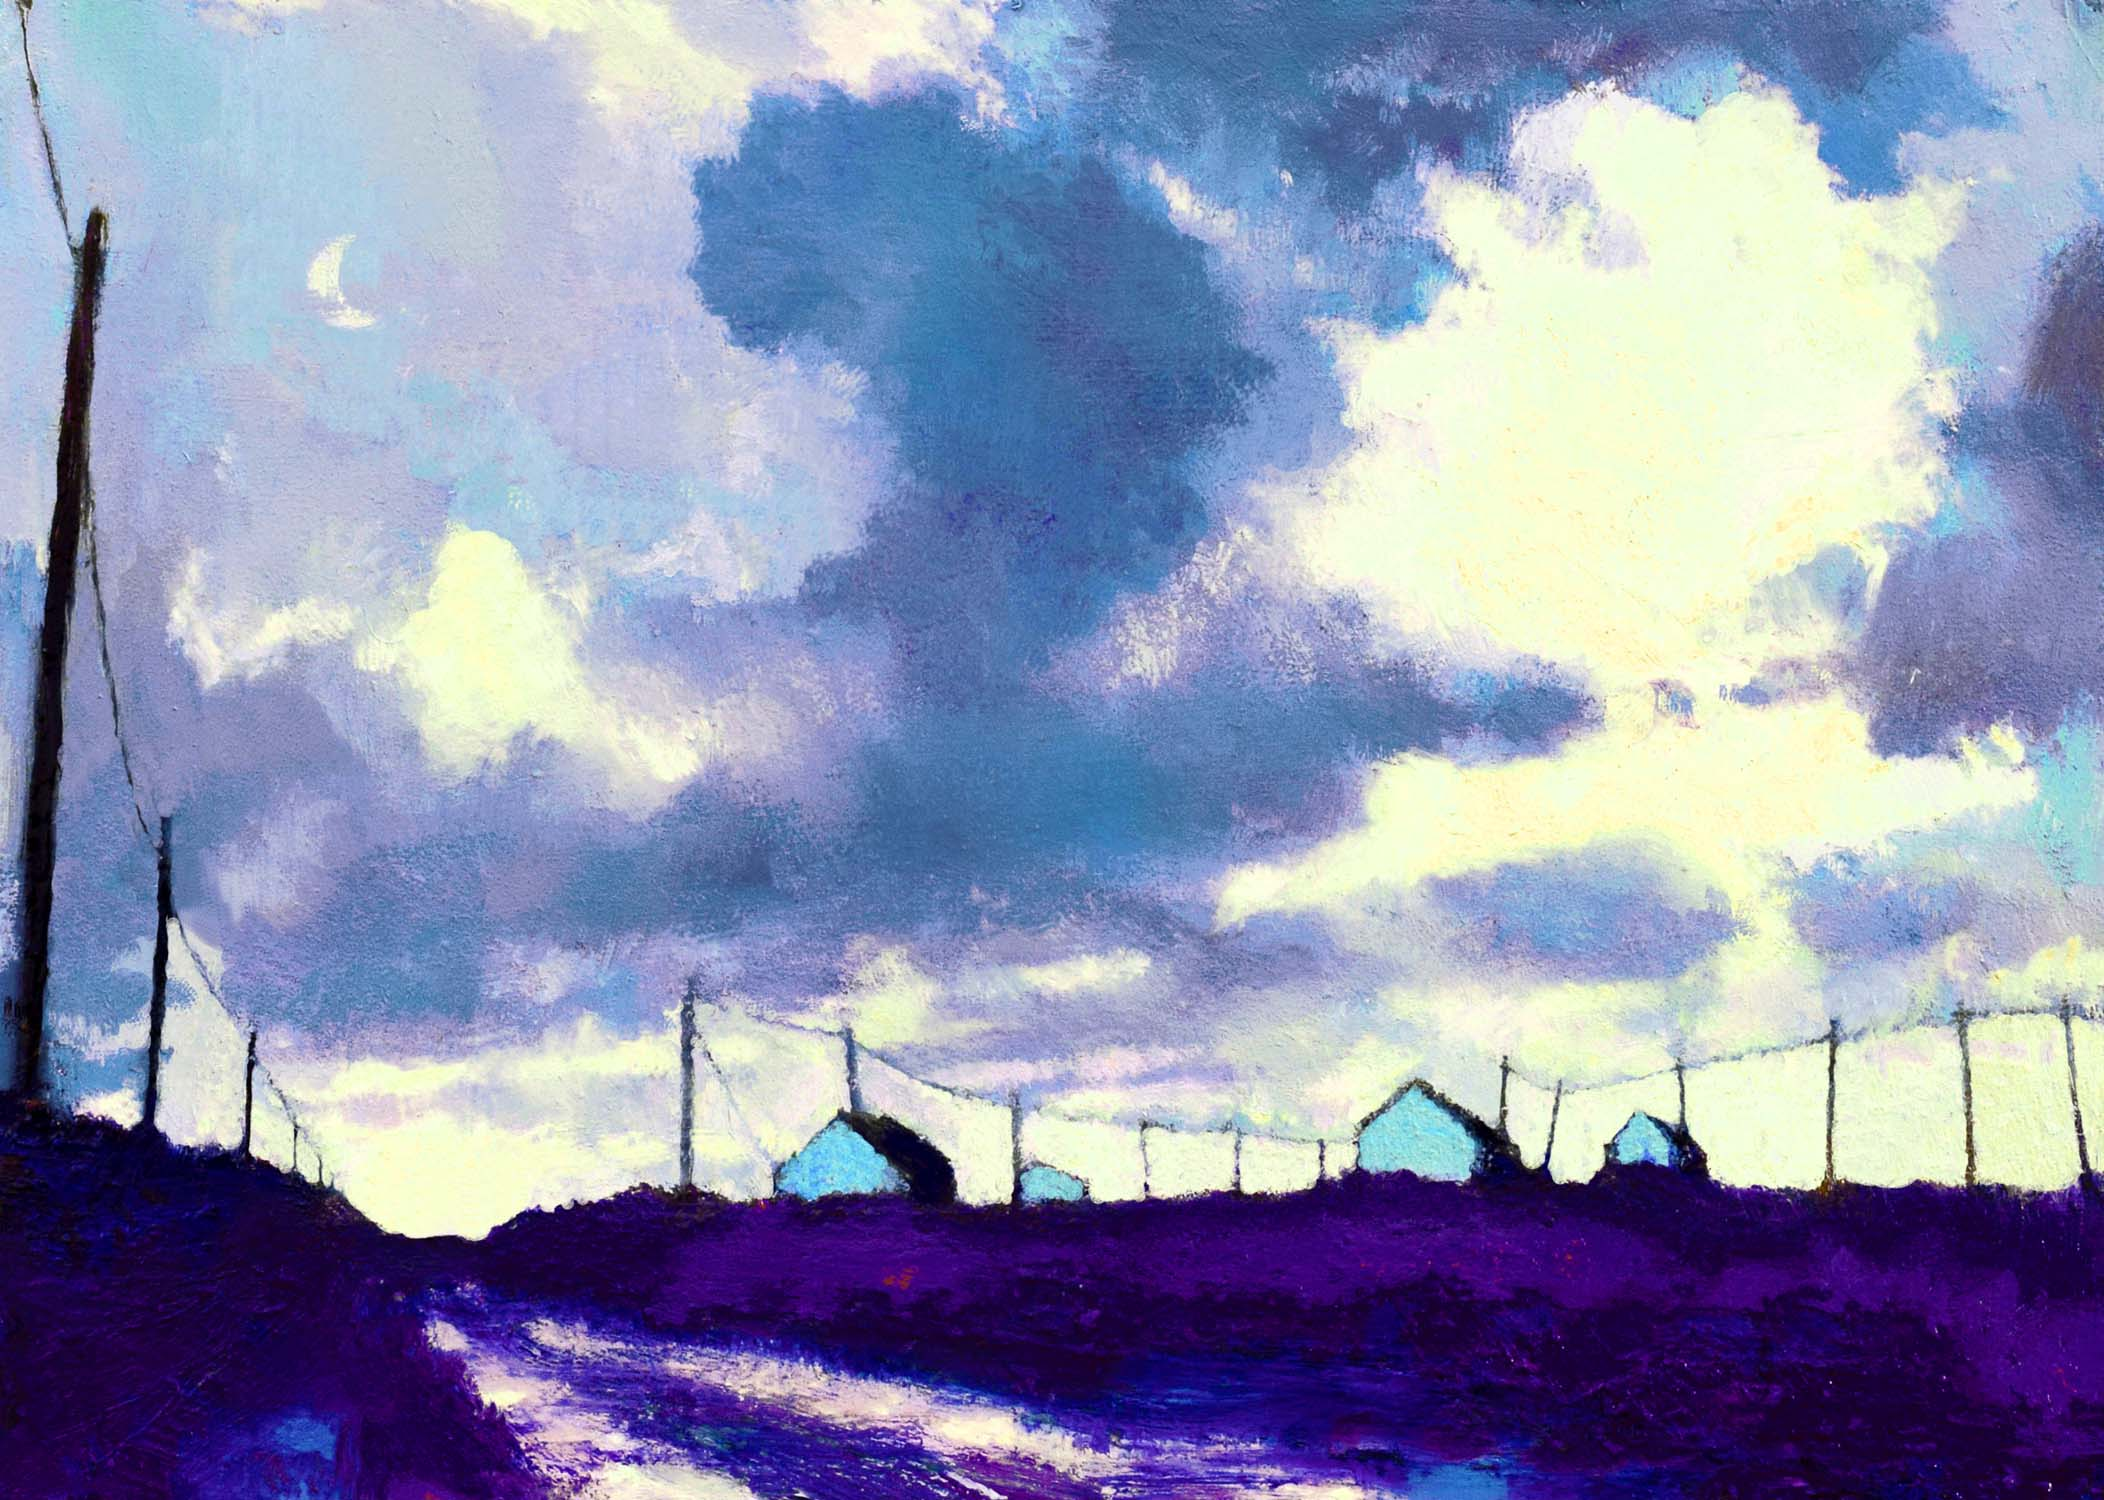 The Road to the Sea IV by John O'Grady | A contemporary oil on canvas landscape painting of the west of Ireland, close to the ocean